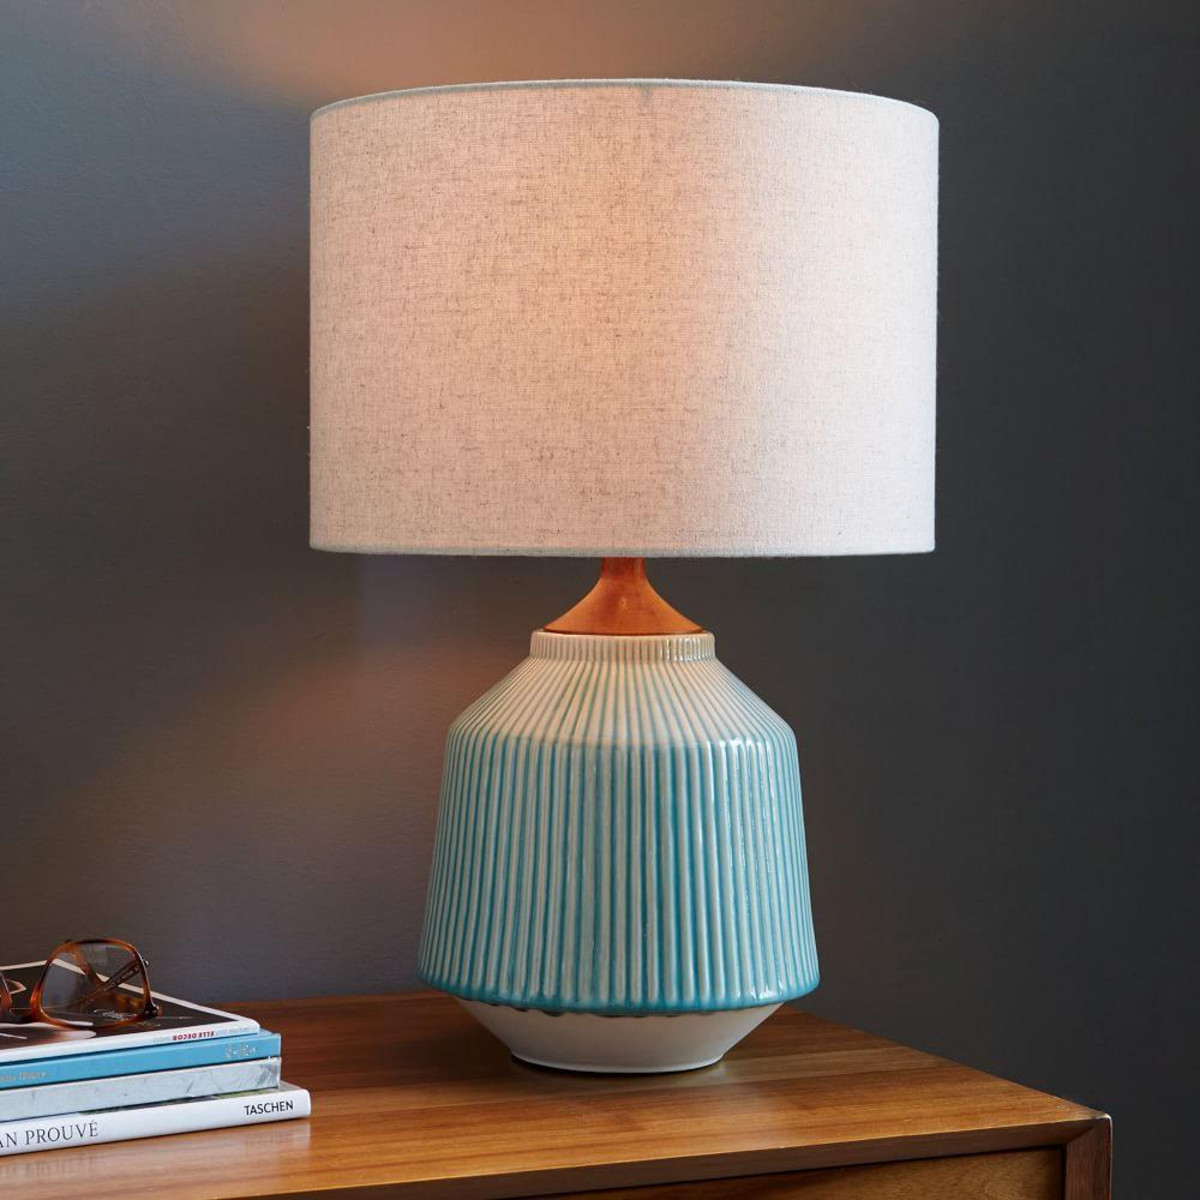 10 Beautiful Pottery Lamps O The Beat That My Heart Skipped